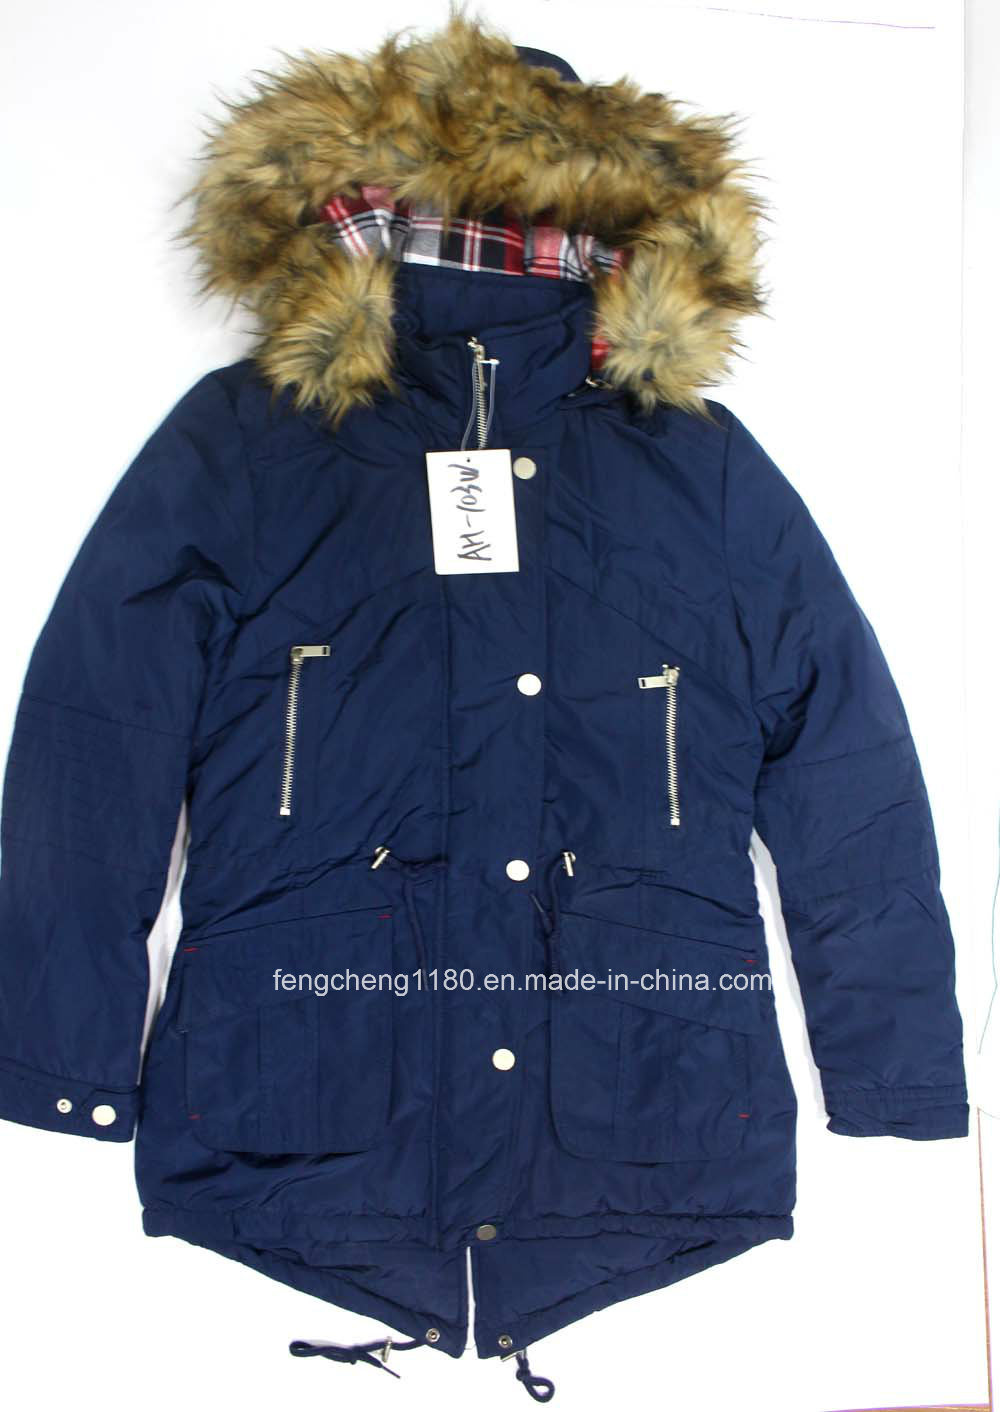 Ladies Winter Padding Jacket / Coat with Detachble Fur Hood